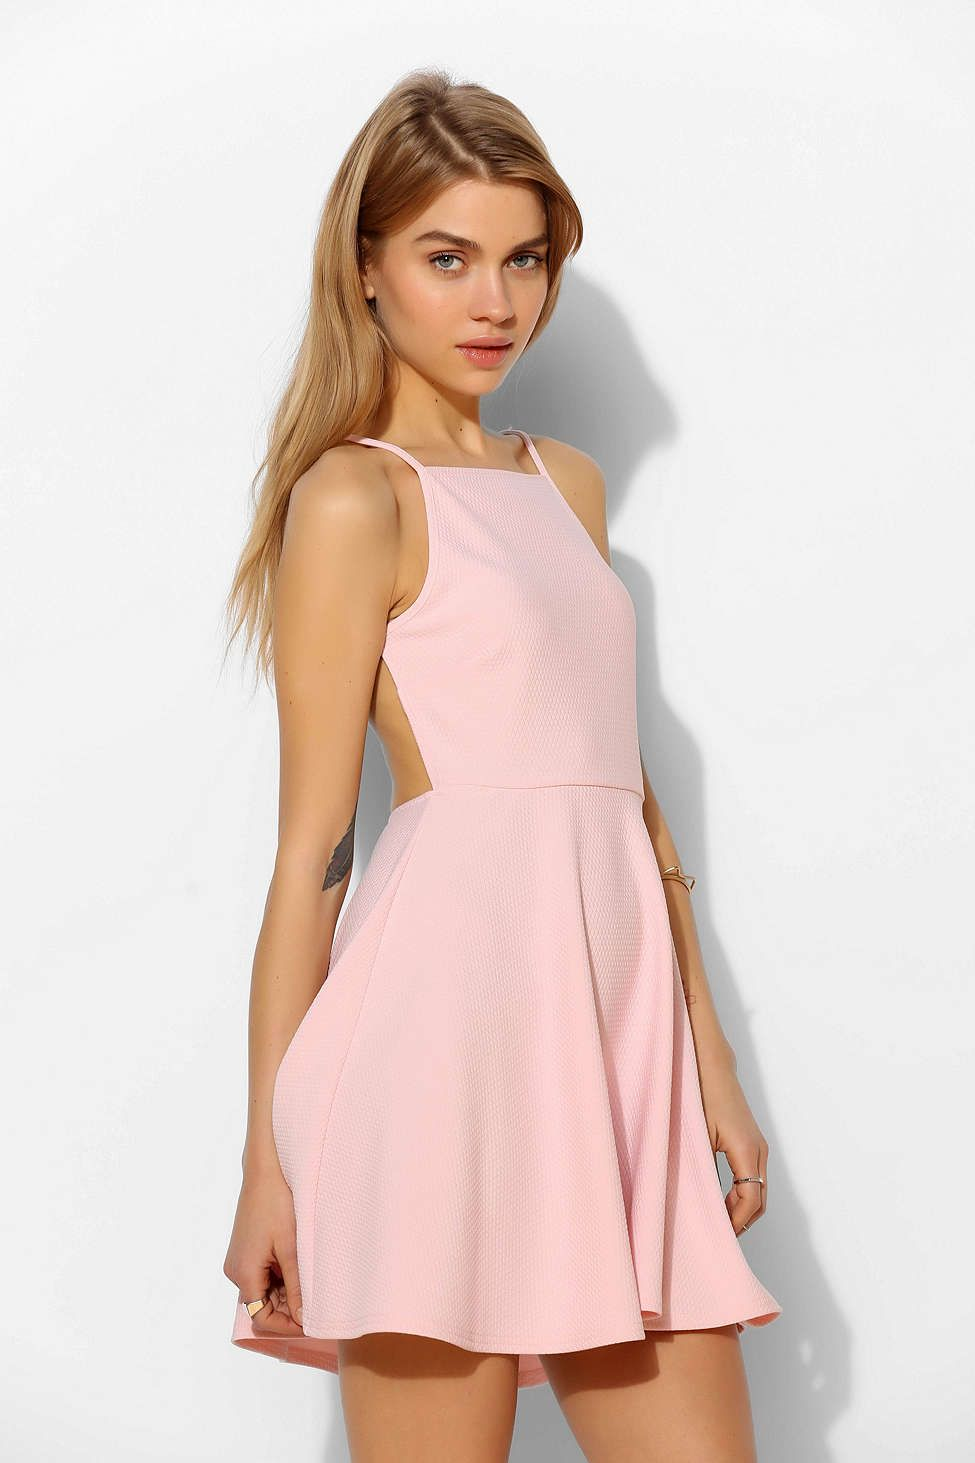 Oh My Love Strappy-Back Skater Dress - Urban Outfitters | Lush ...